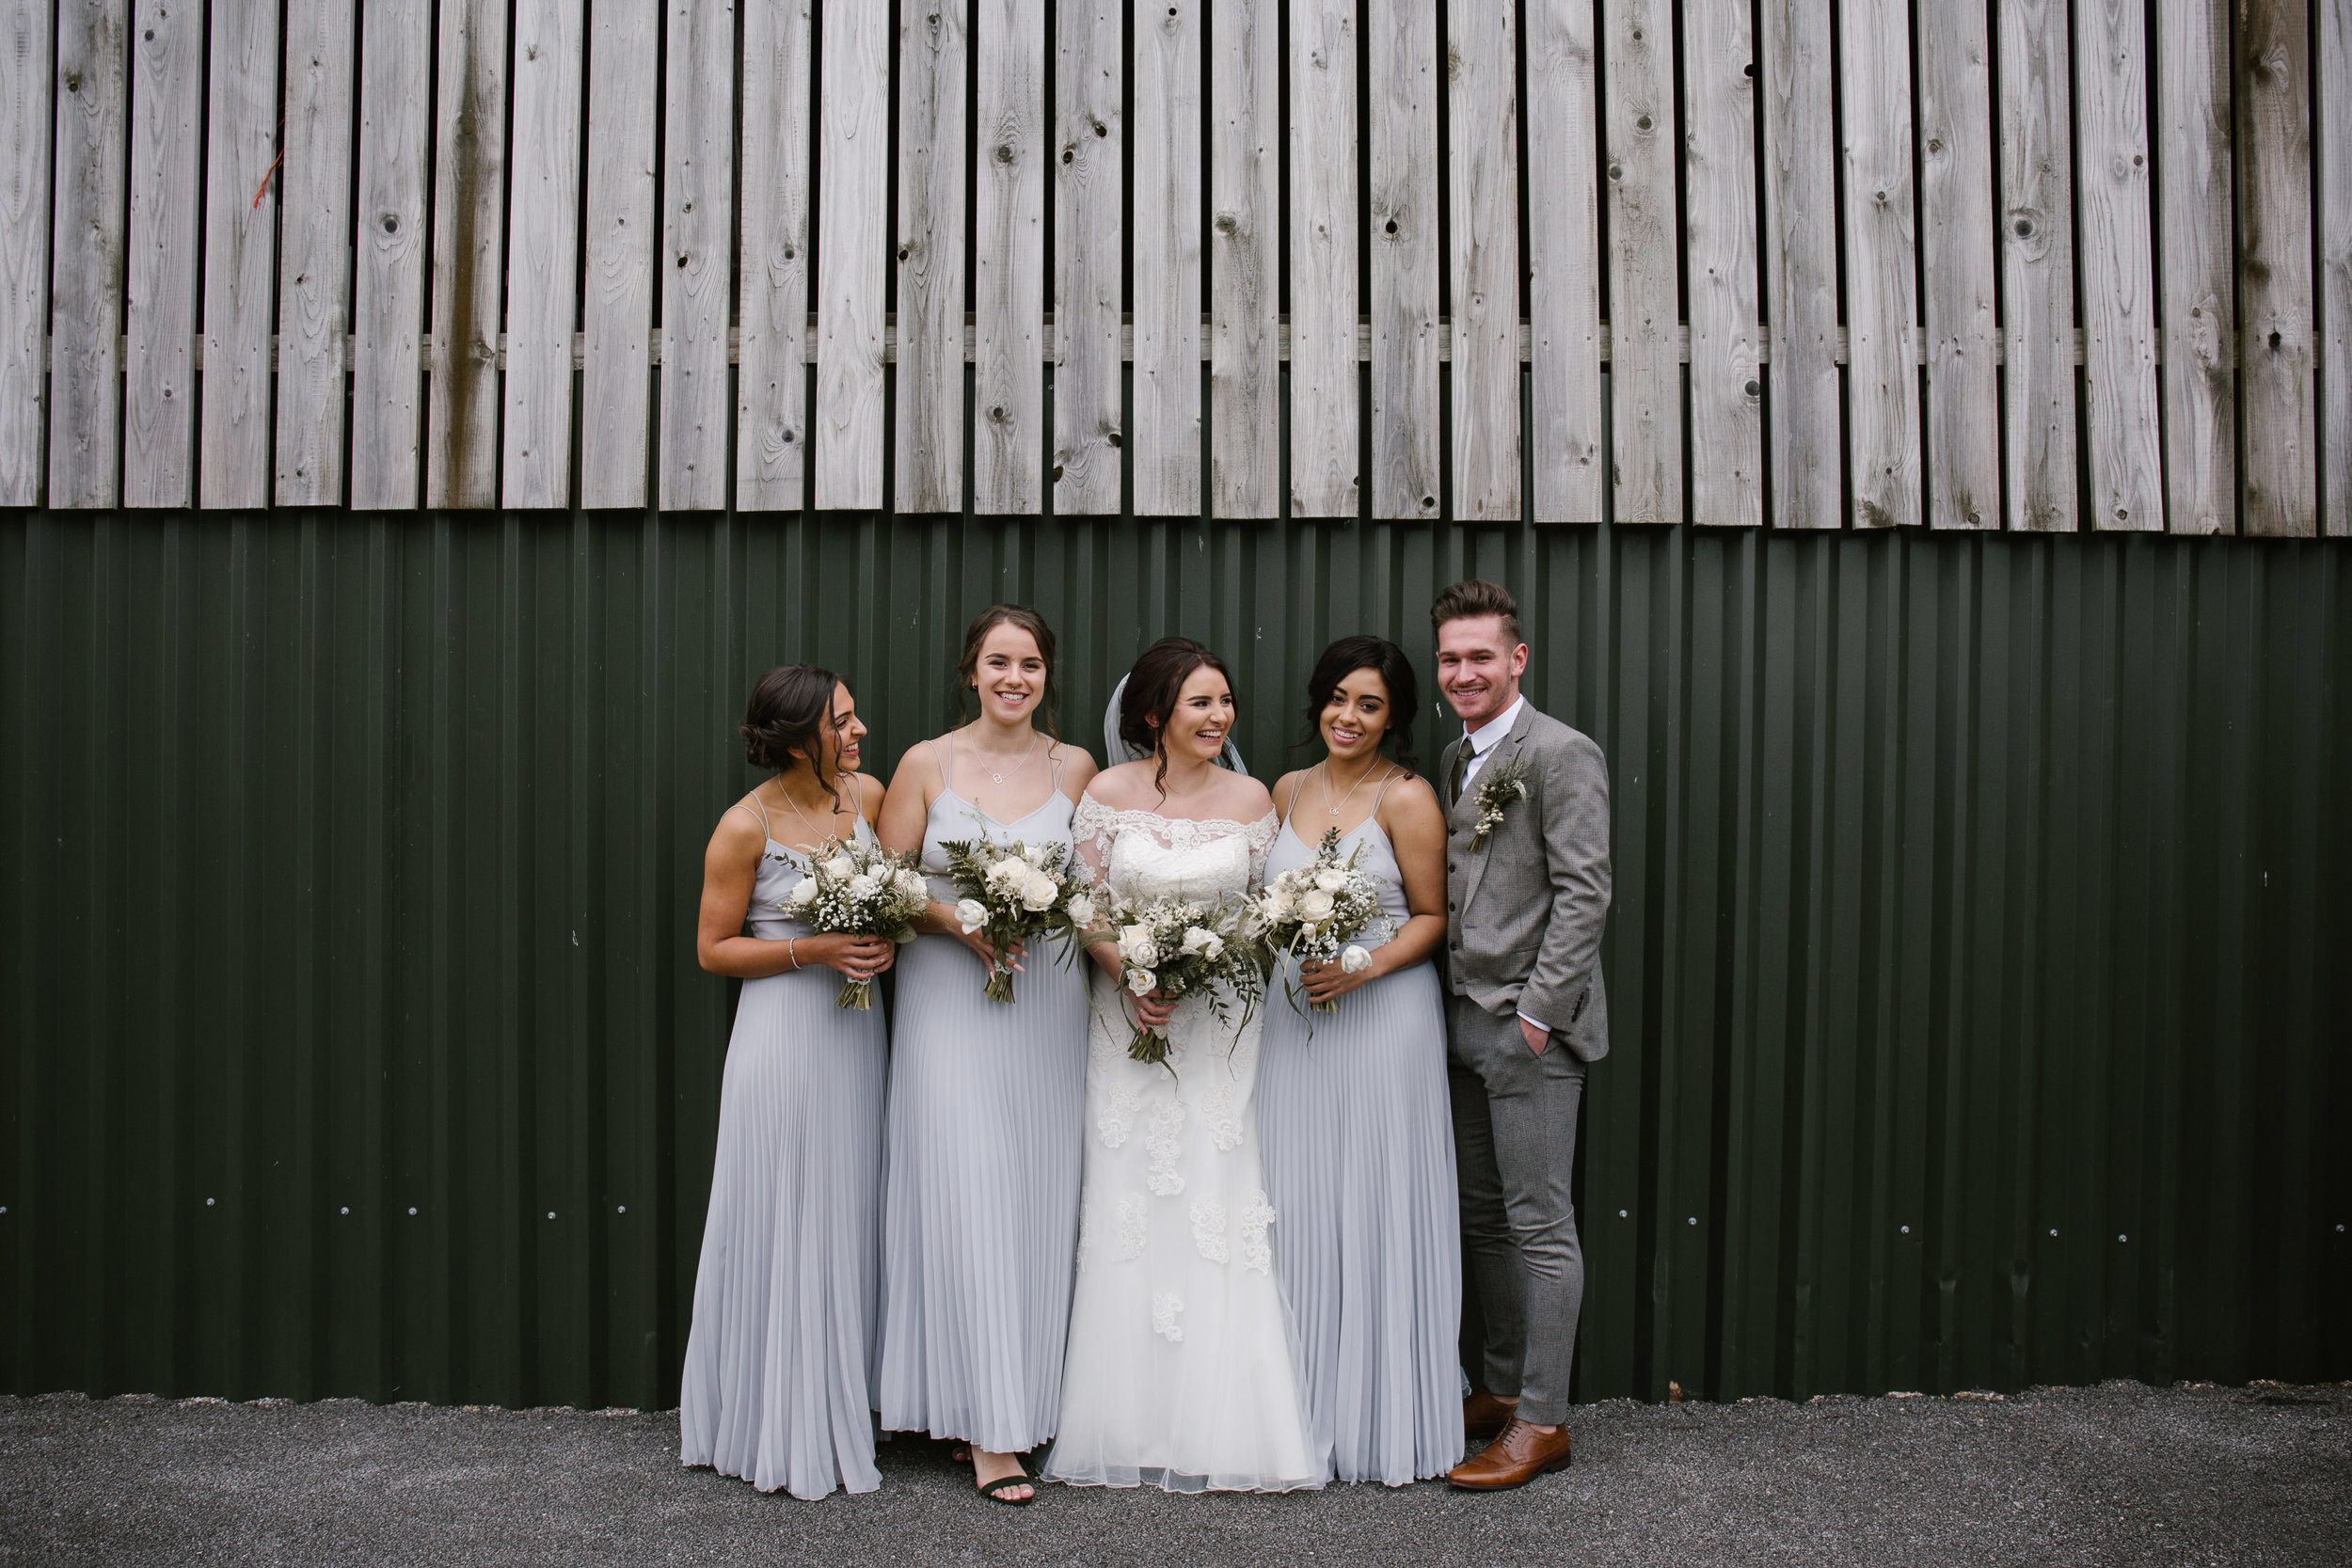 Sandhole Oak Barn, Rustic Wedding, DIY Wedding, Manchester wedding photographer, Birmingham wedding photographer, barn wedding-174.jpg